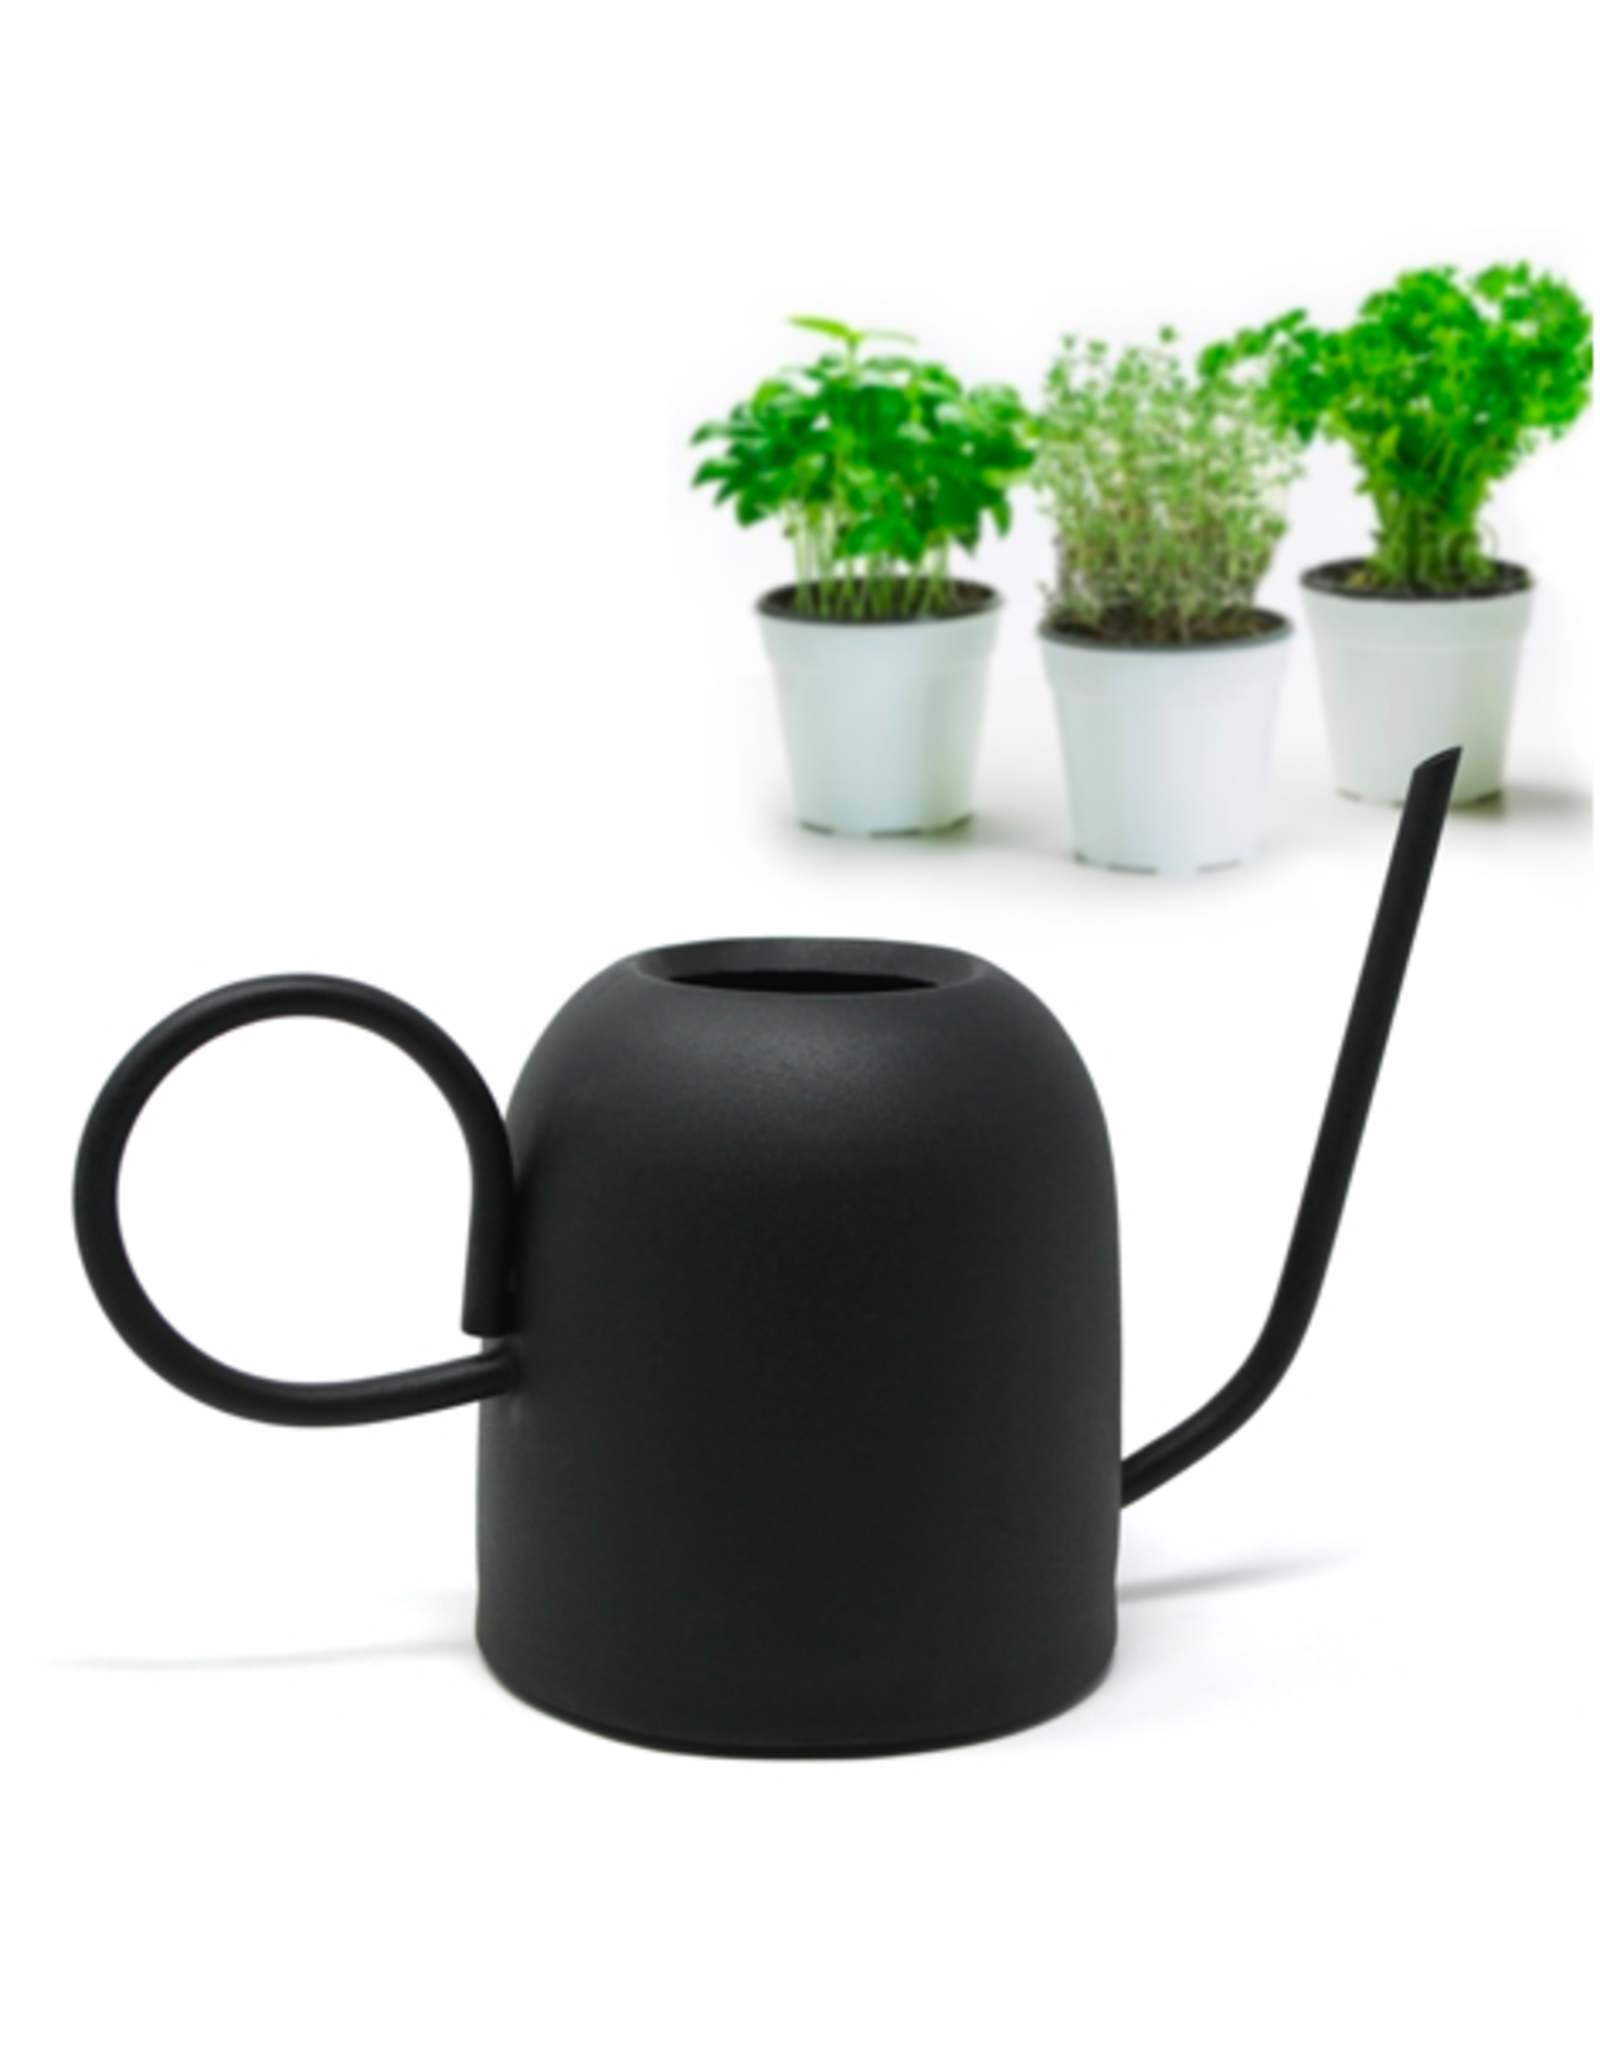 DCO - Watering Can/Chelsea, Black, 1.5L